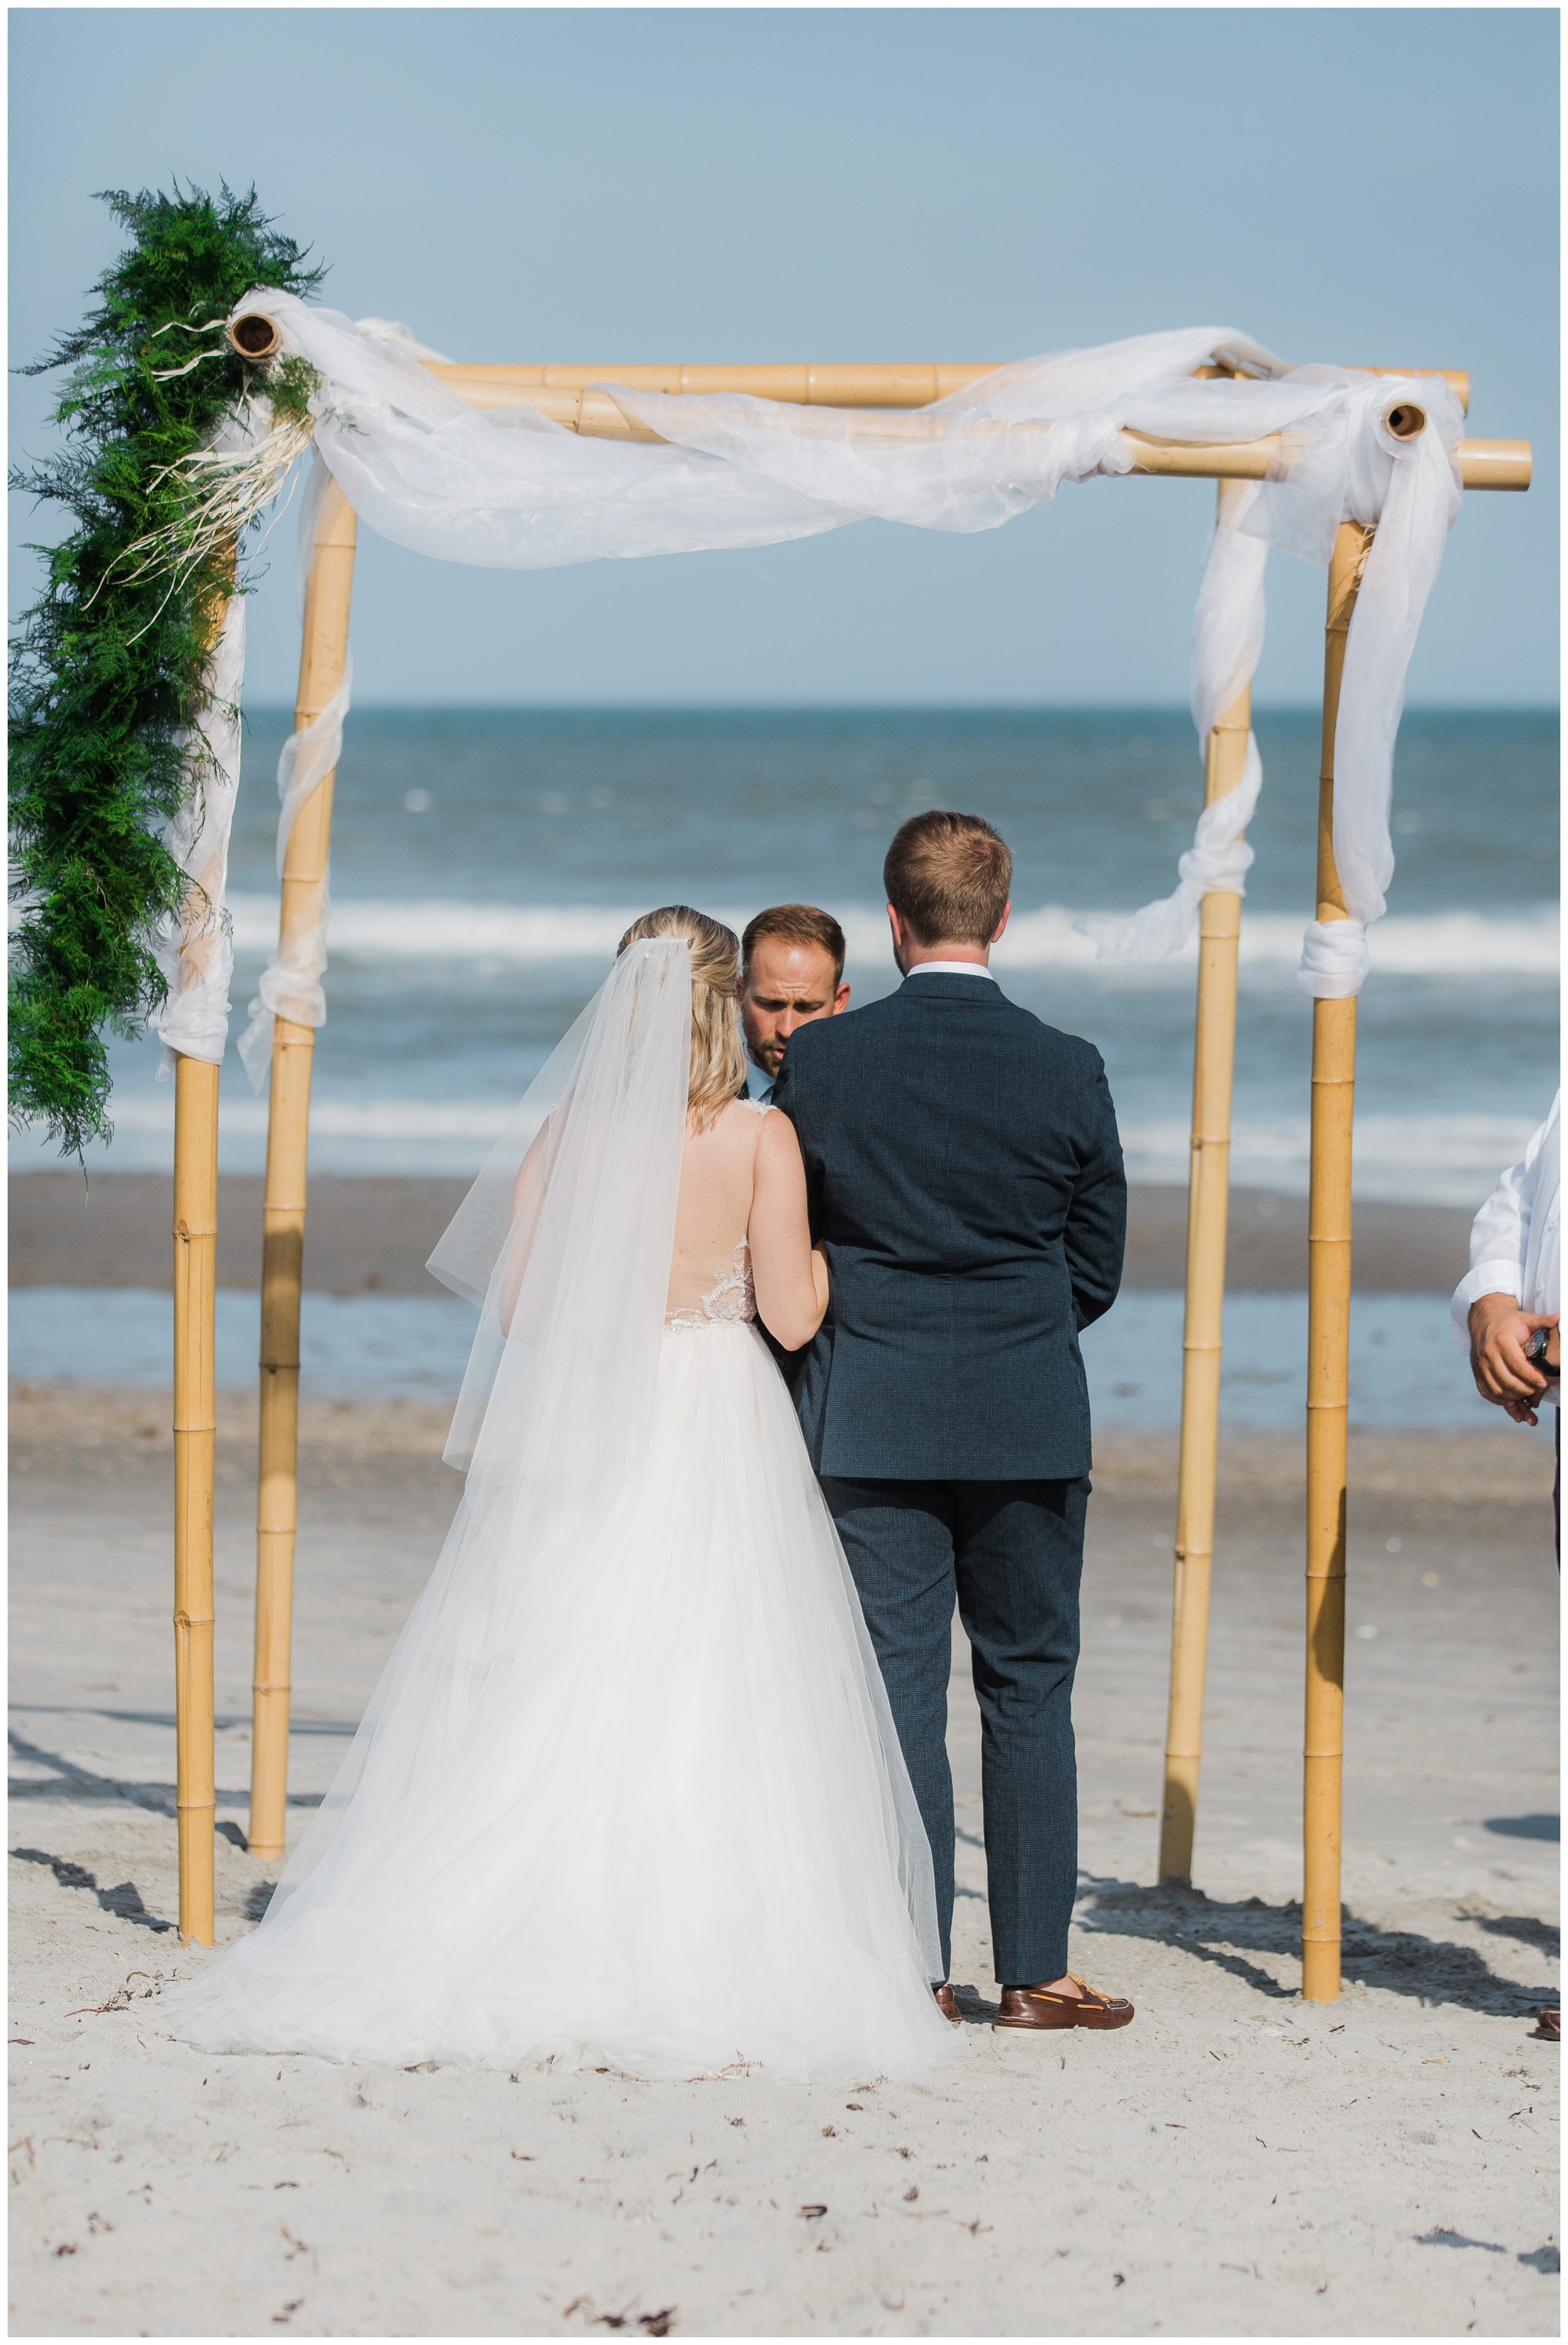 kaley and kevin-coco beach pier wedding-kimberly smith photography_0030.jpg